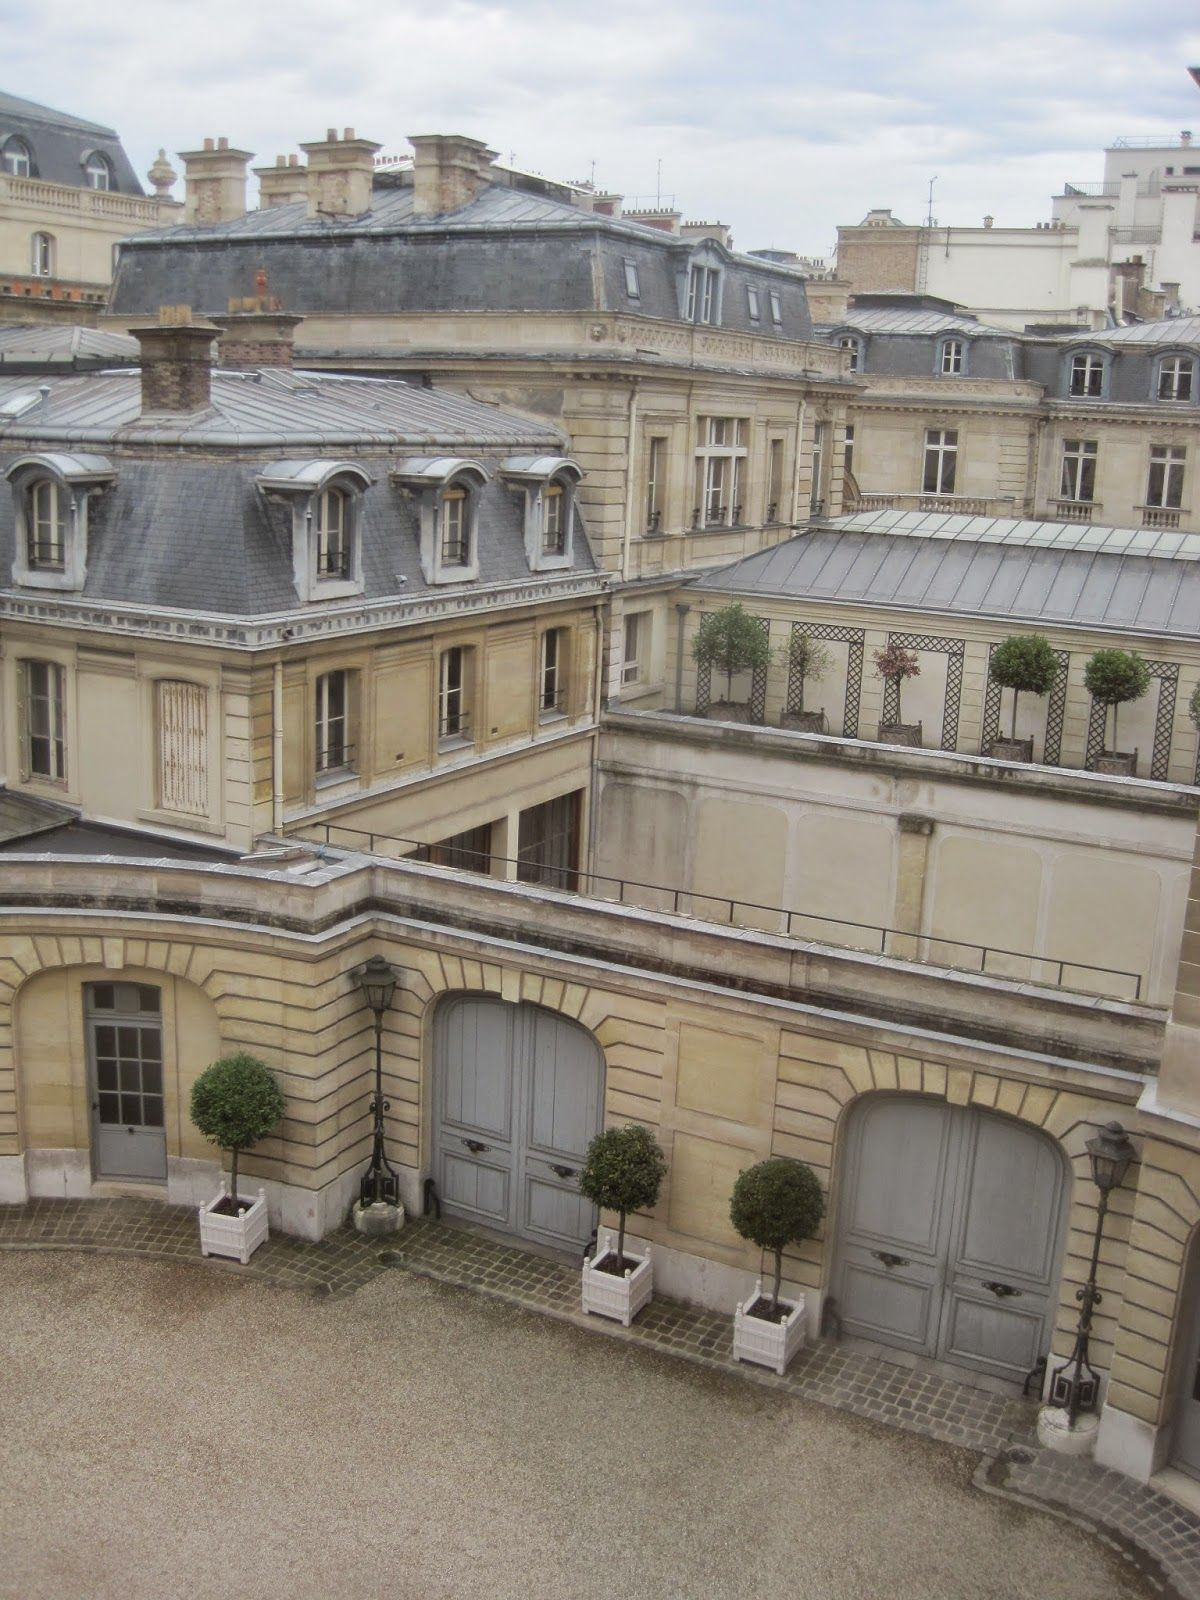 Famous French Architects architect design™: the most elegant house- musee nissim de camondo